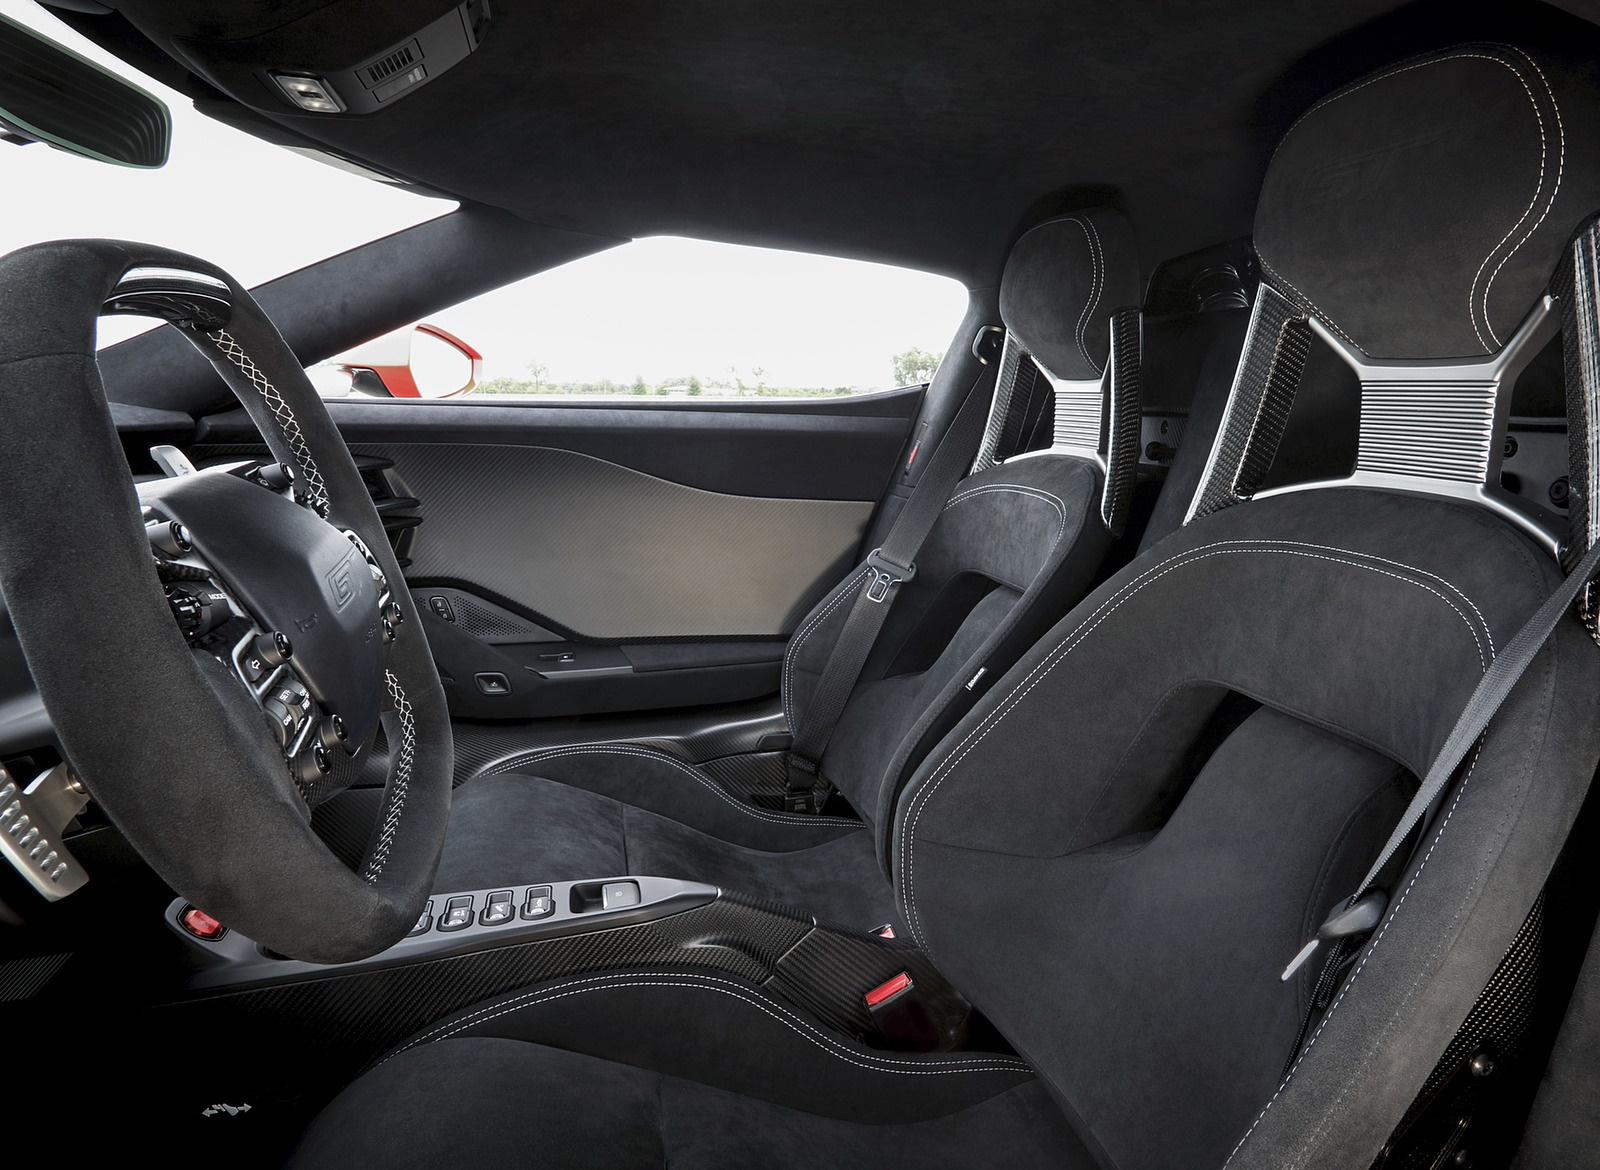 2019 Ford GT Carbon Series Interior Seats Wallpapers (11)